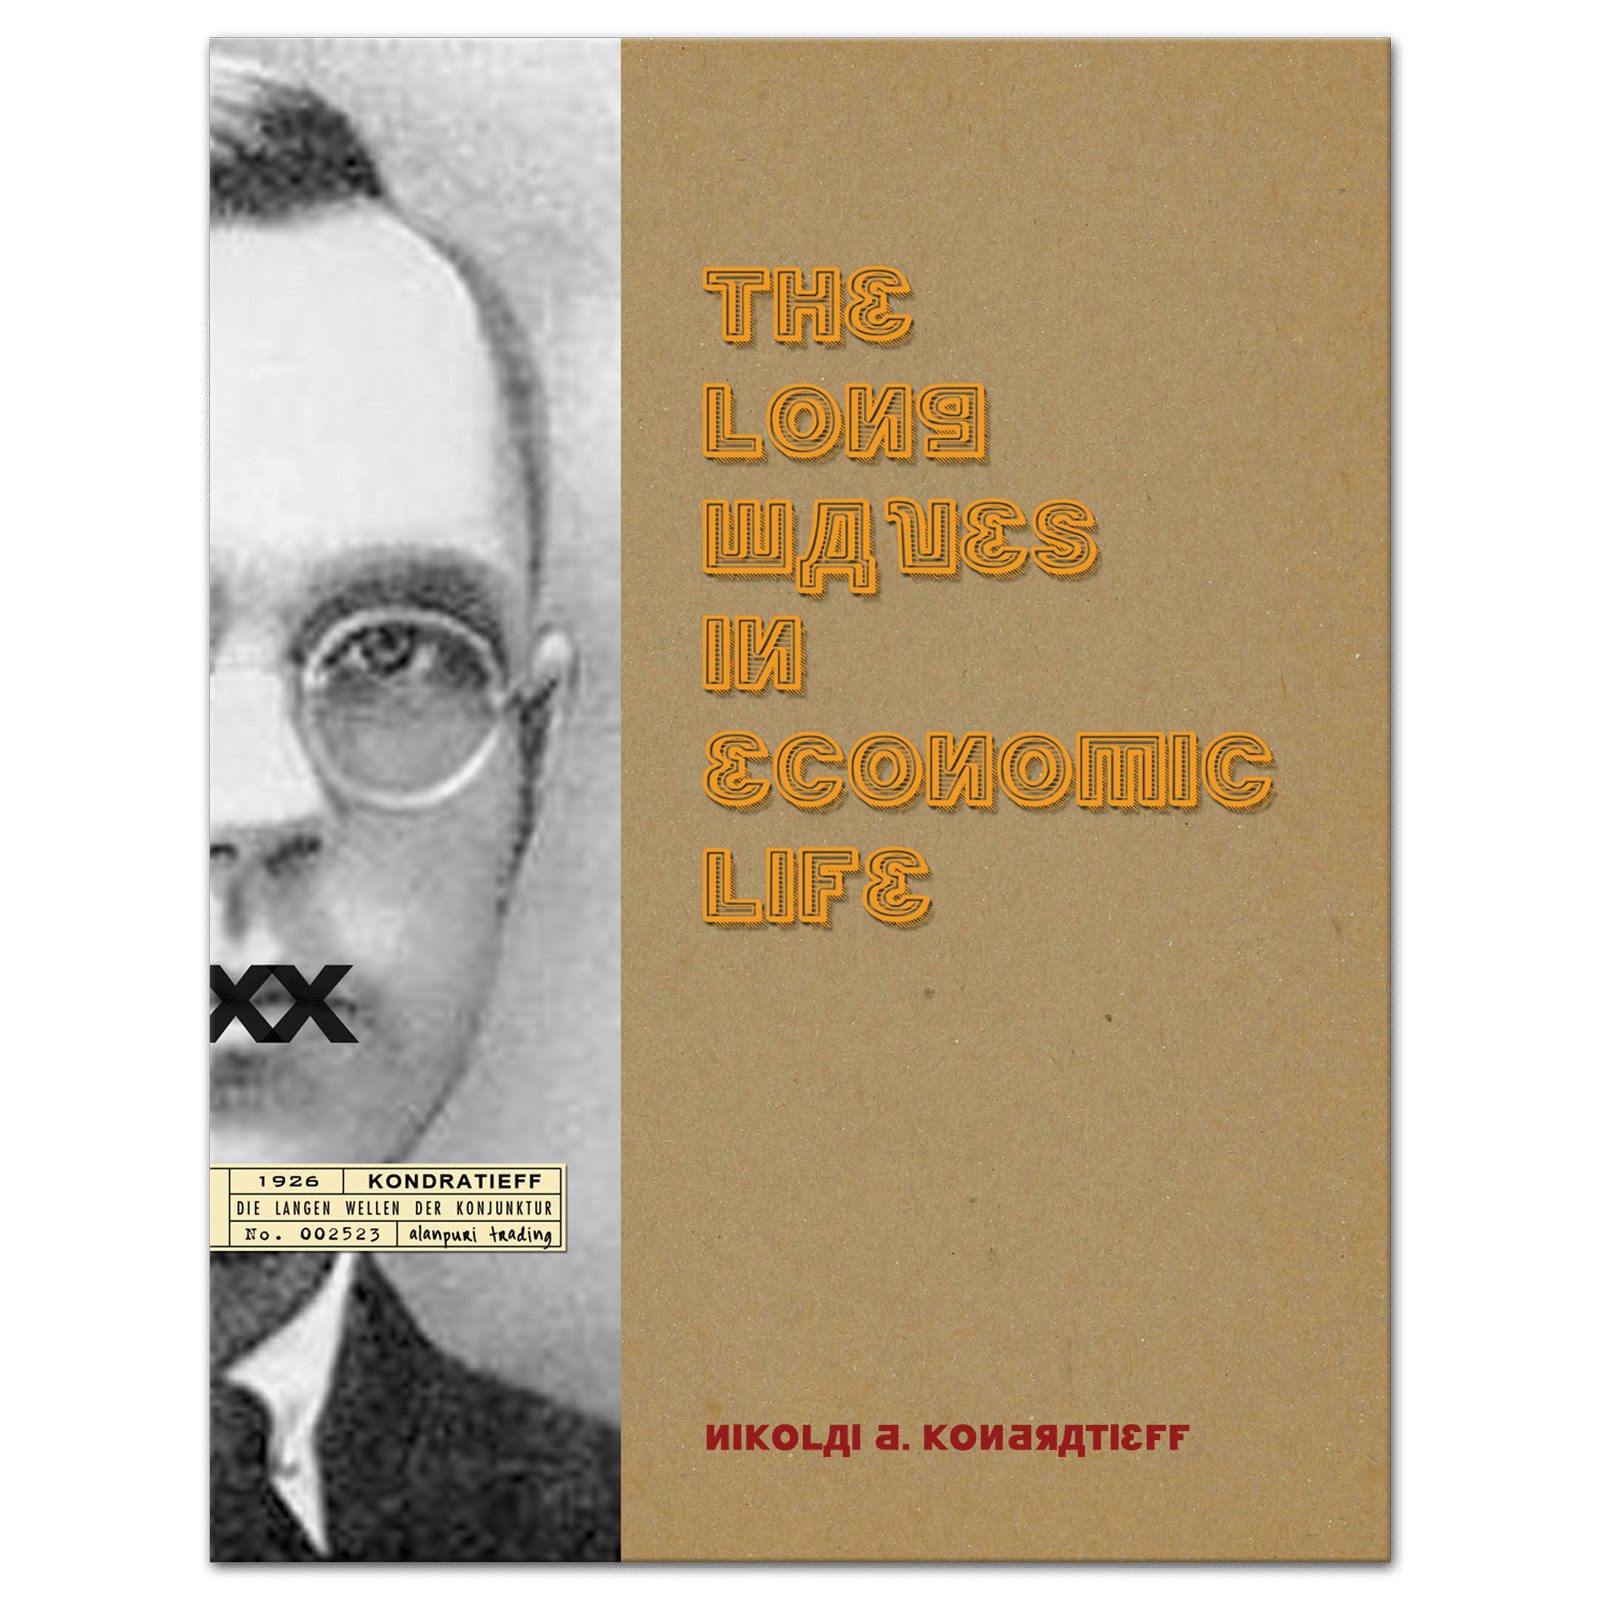 The Long Waves in Economic Life (1920s) by Nikolai D. Kondratieff